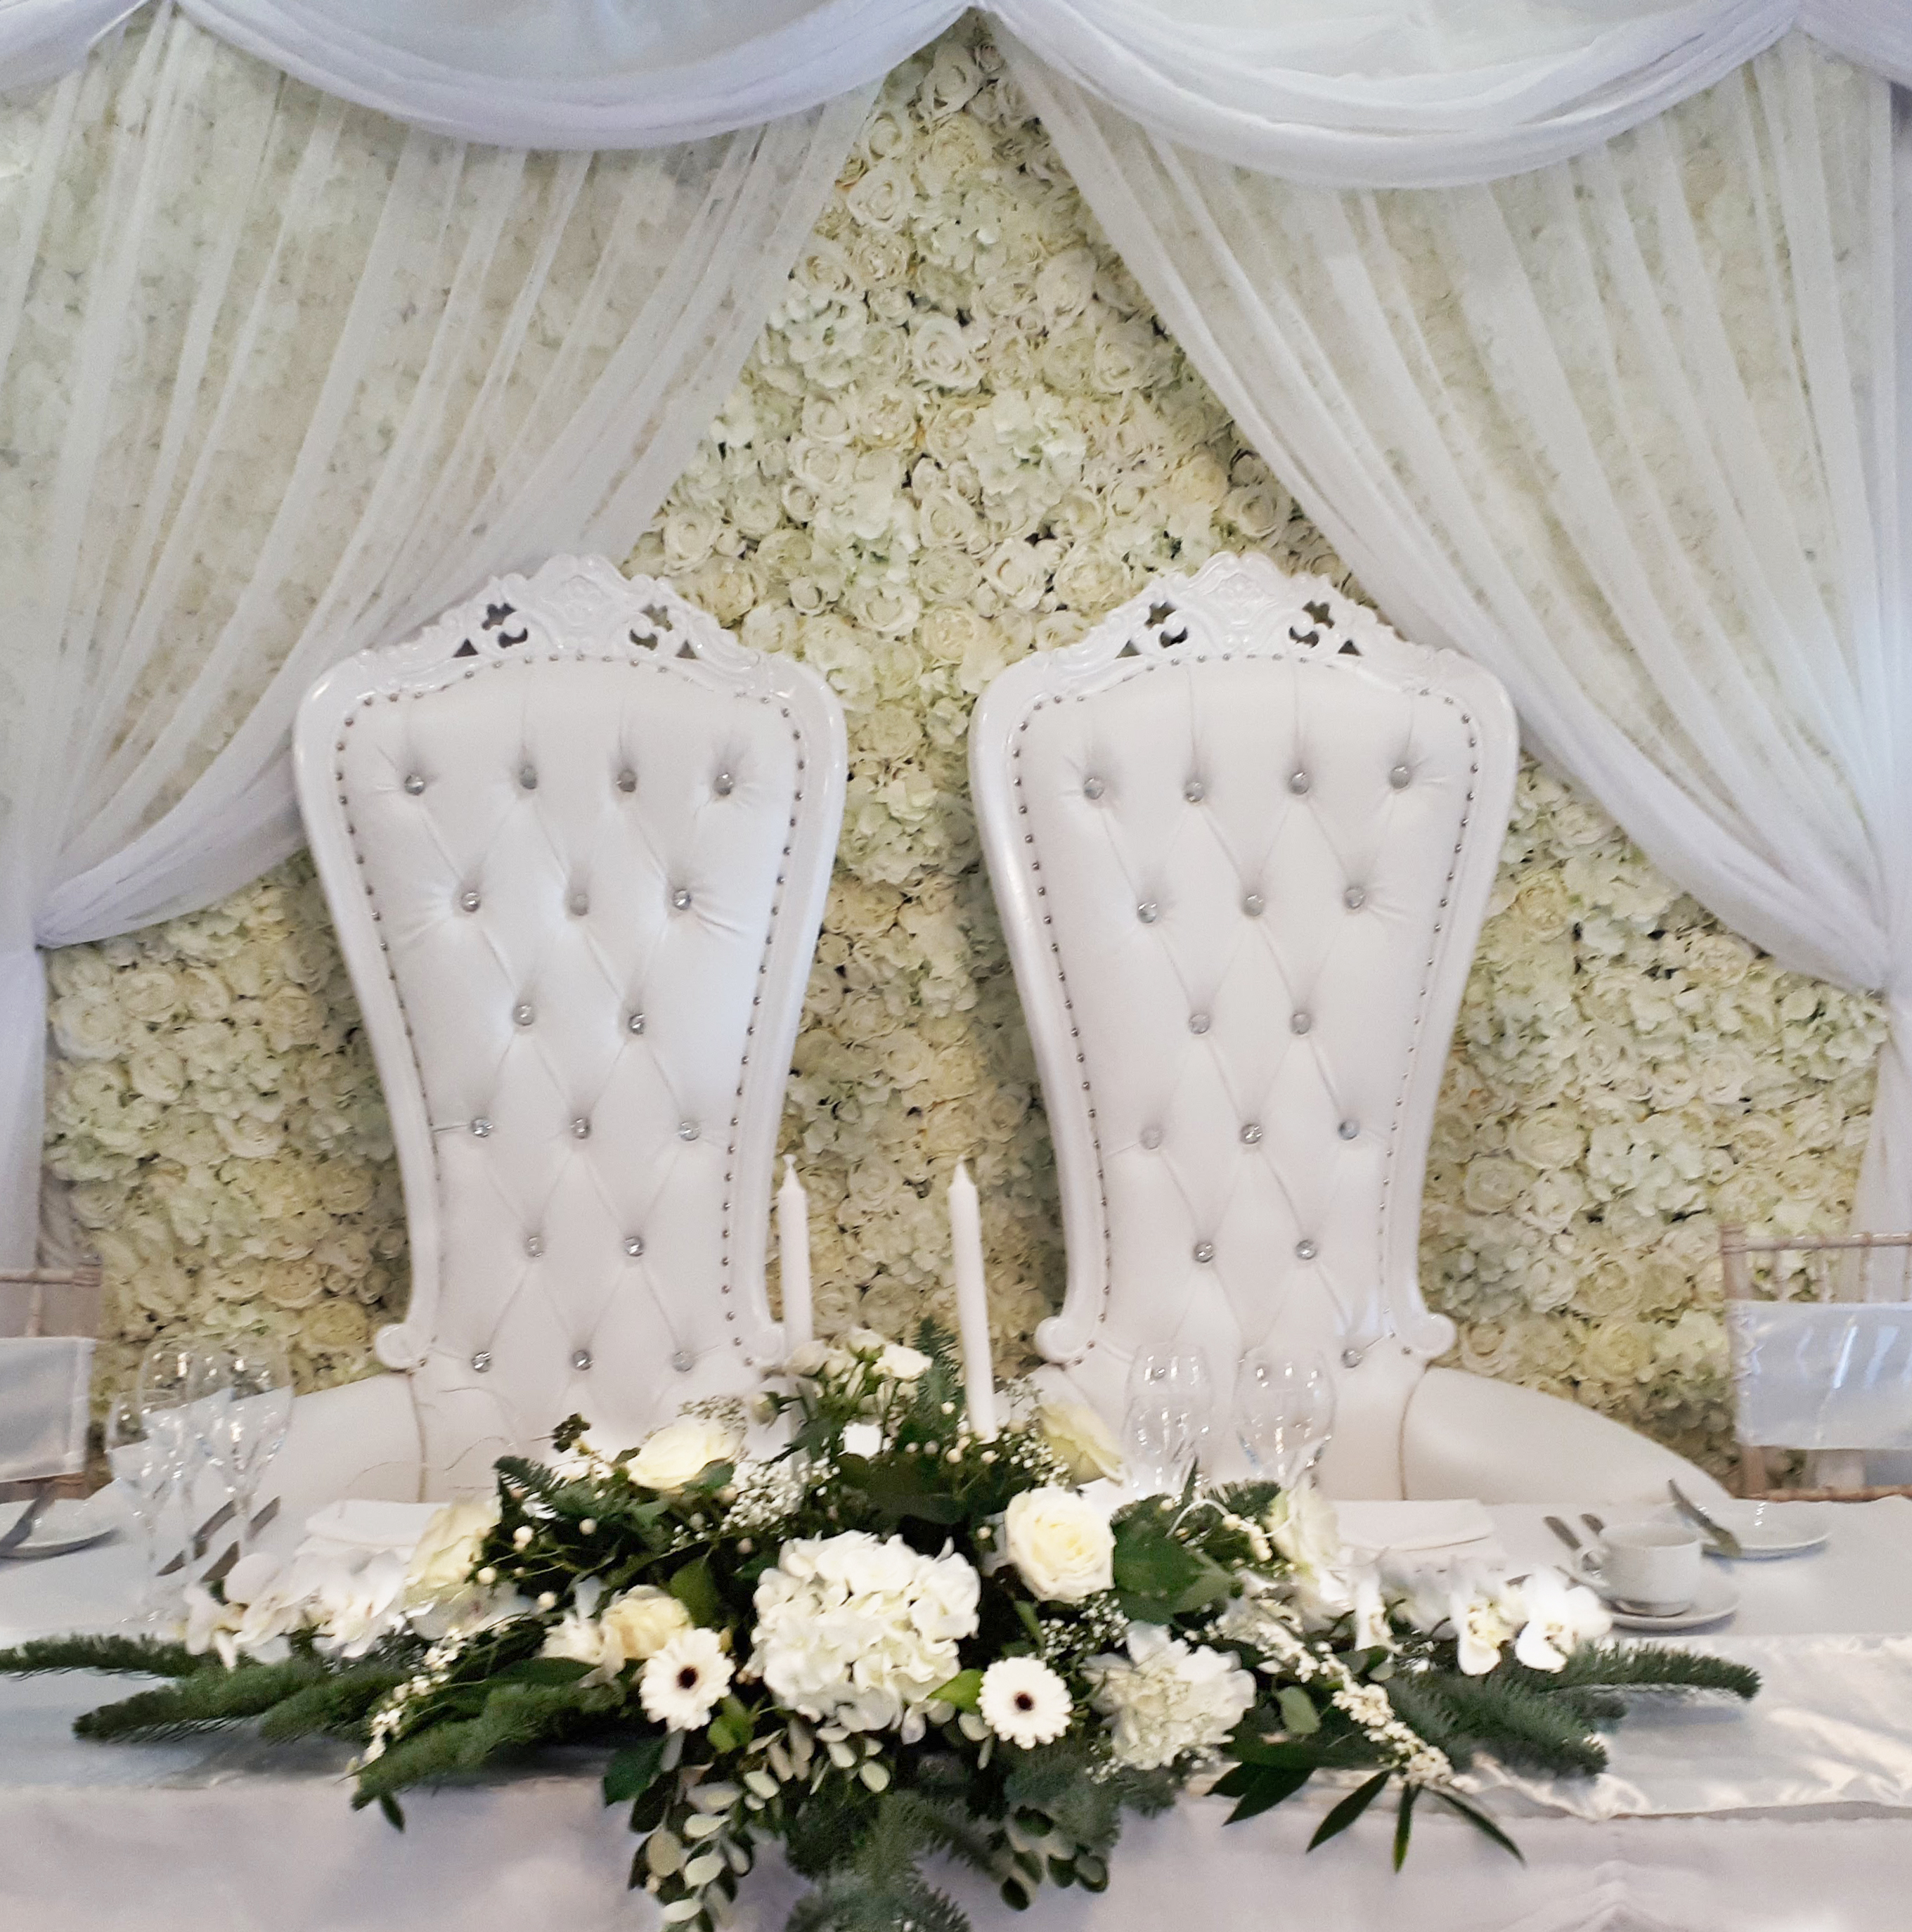 chair covers for hire south wales sit-stand disabled wedding throne starlight events white